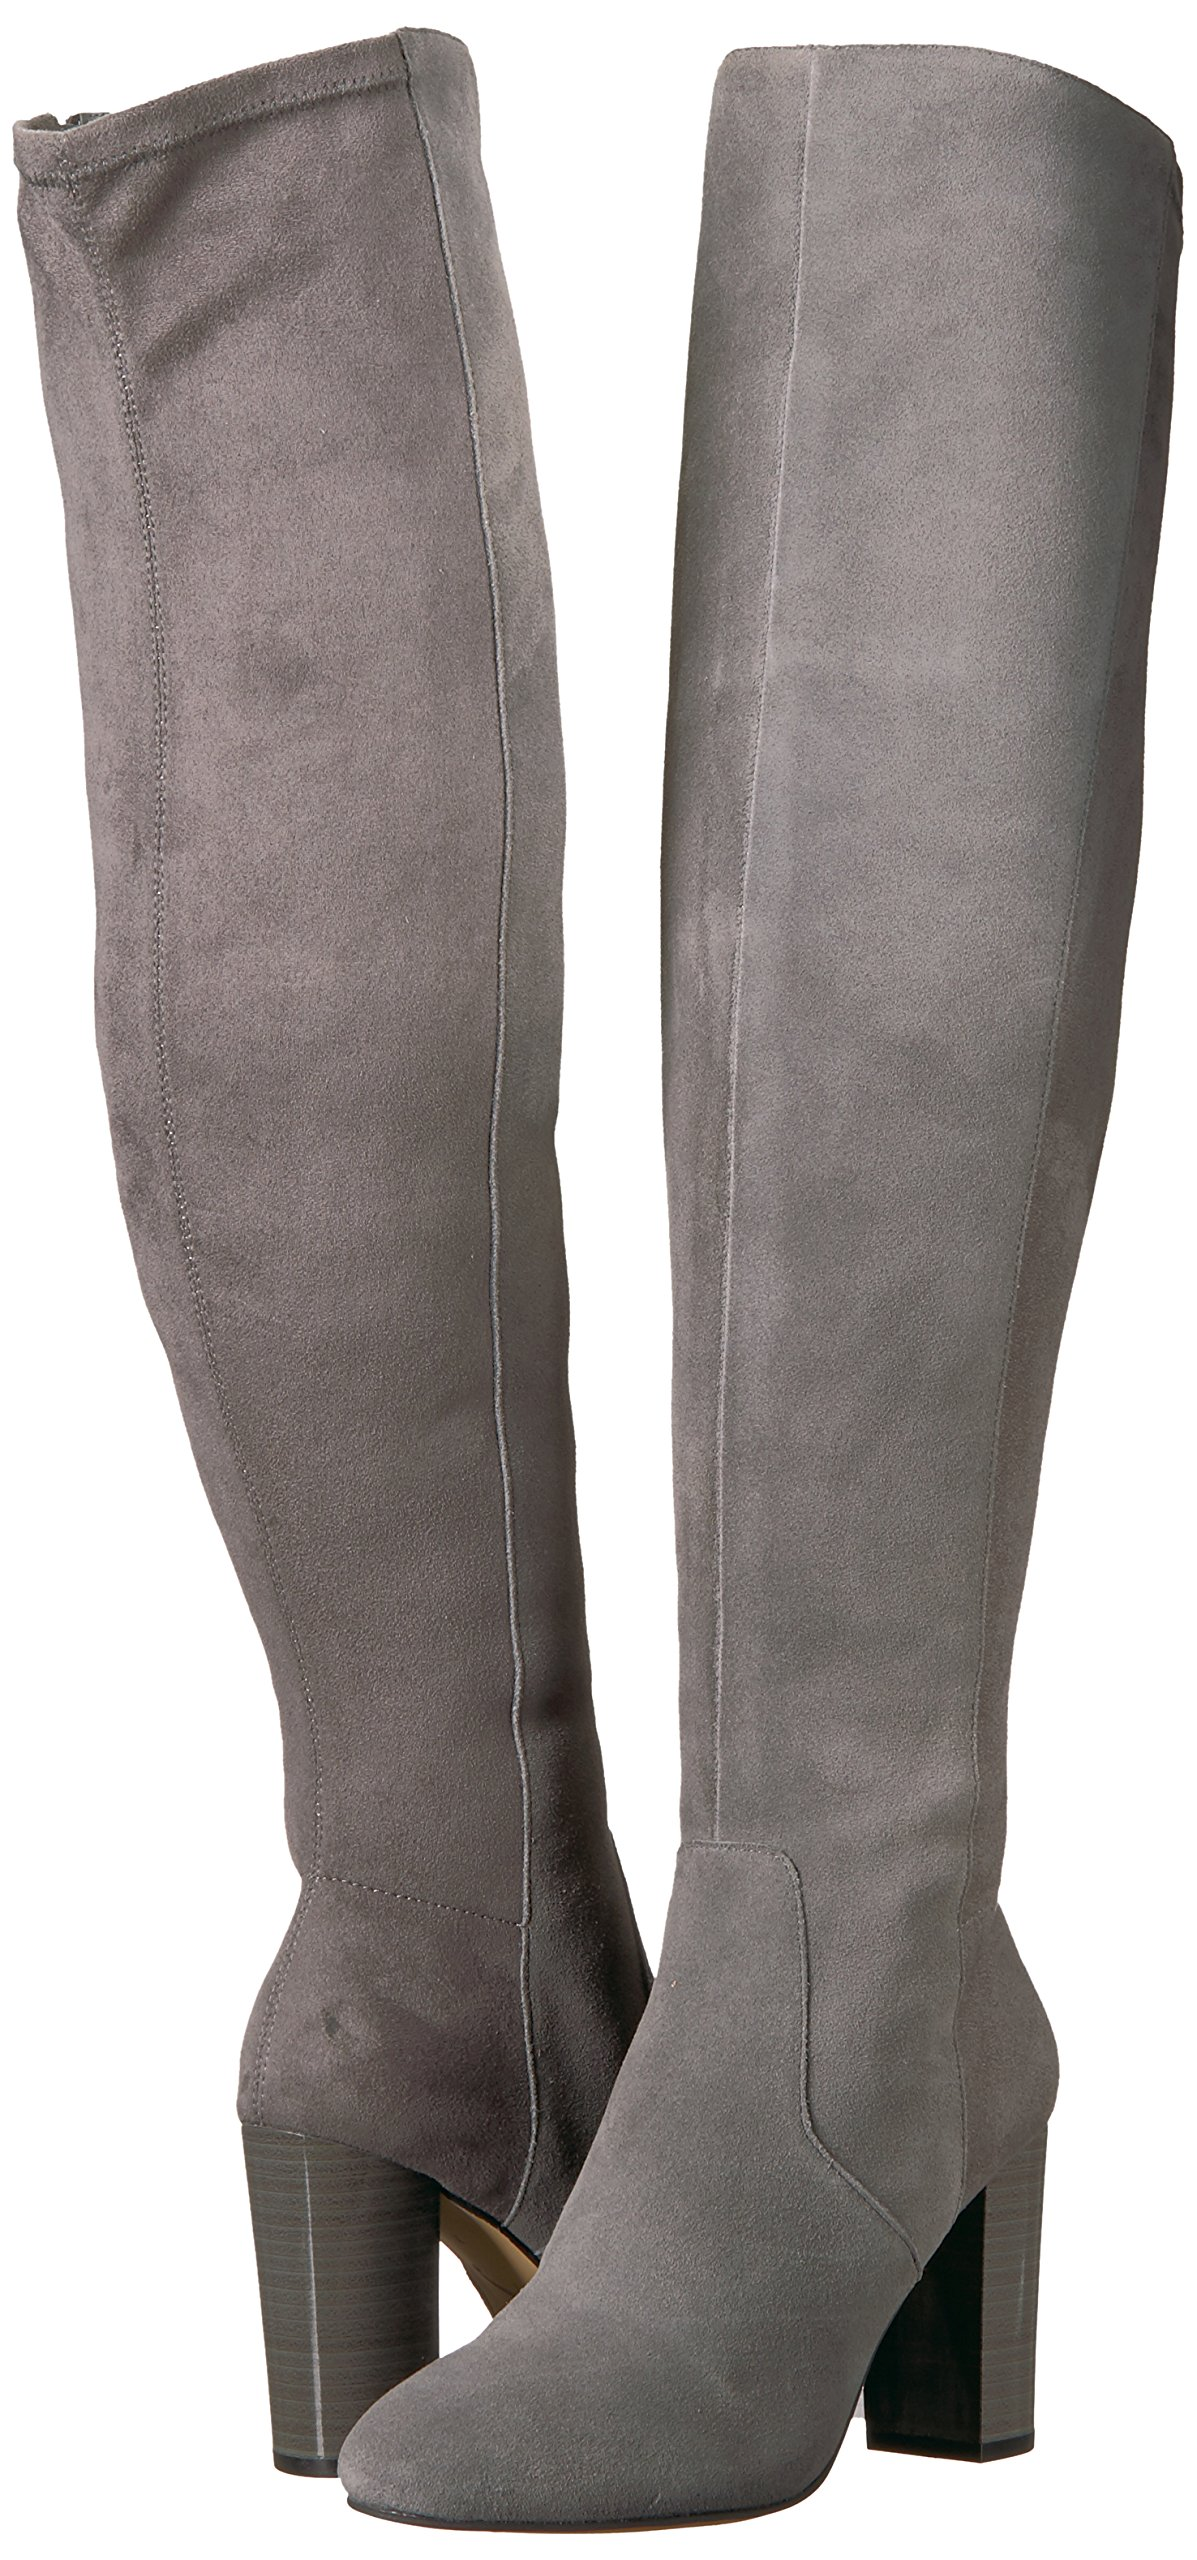 The Fix Women's Lyndsey Over-The-Knee Block-Heel Boot, Elephant Grey, 6.5 M US by The Fix (Image #6)